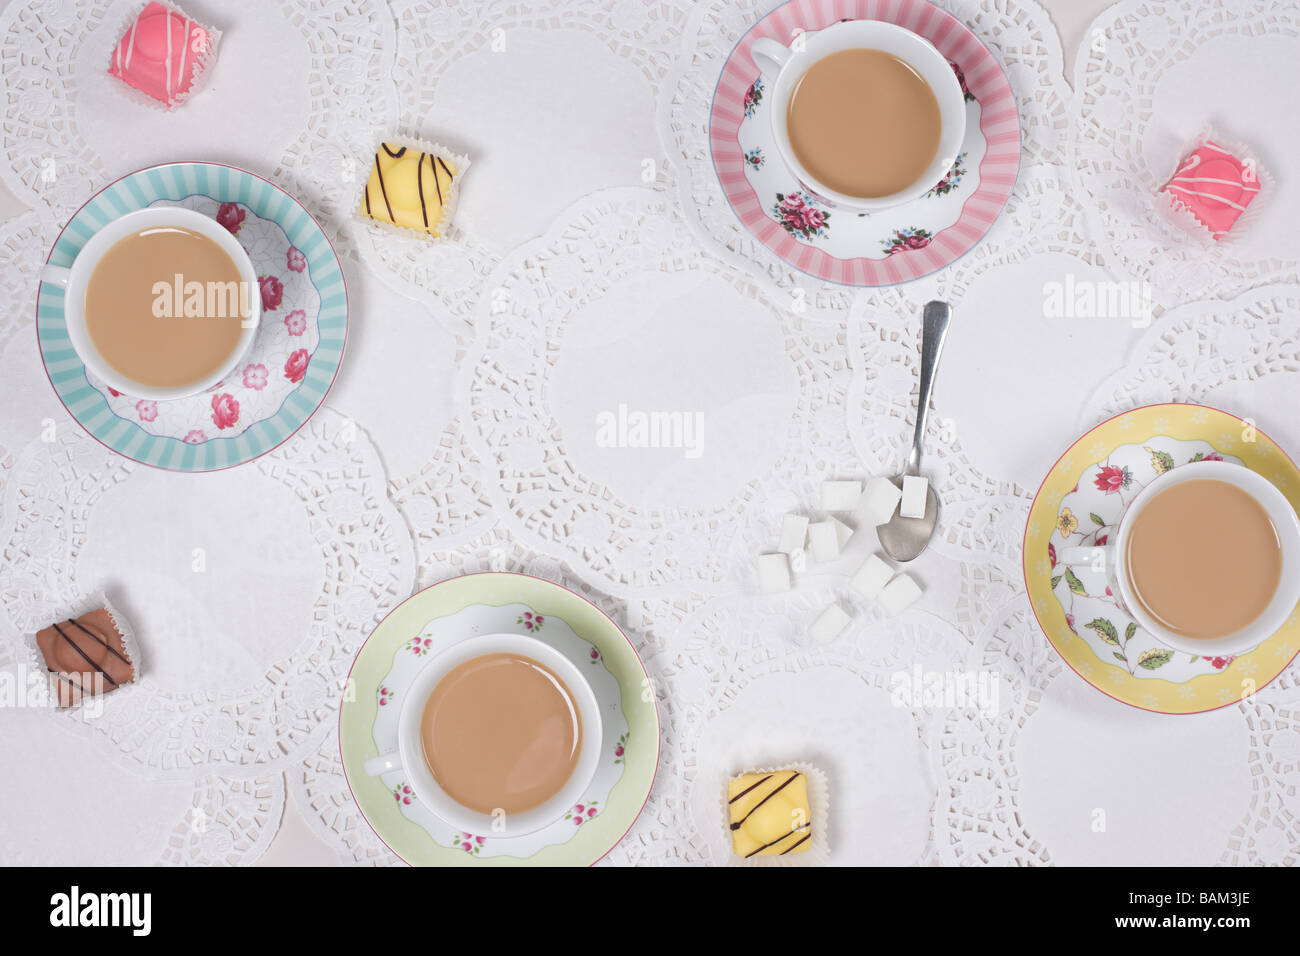 Tea and cakes - Stock Image